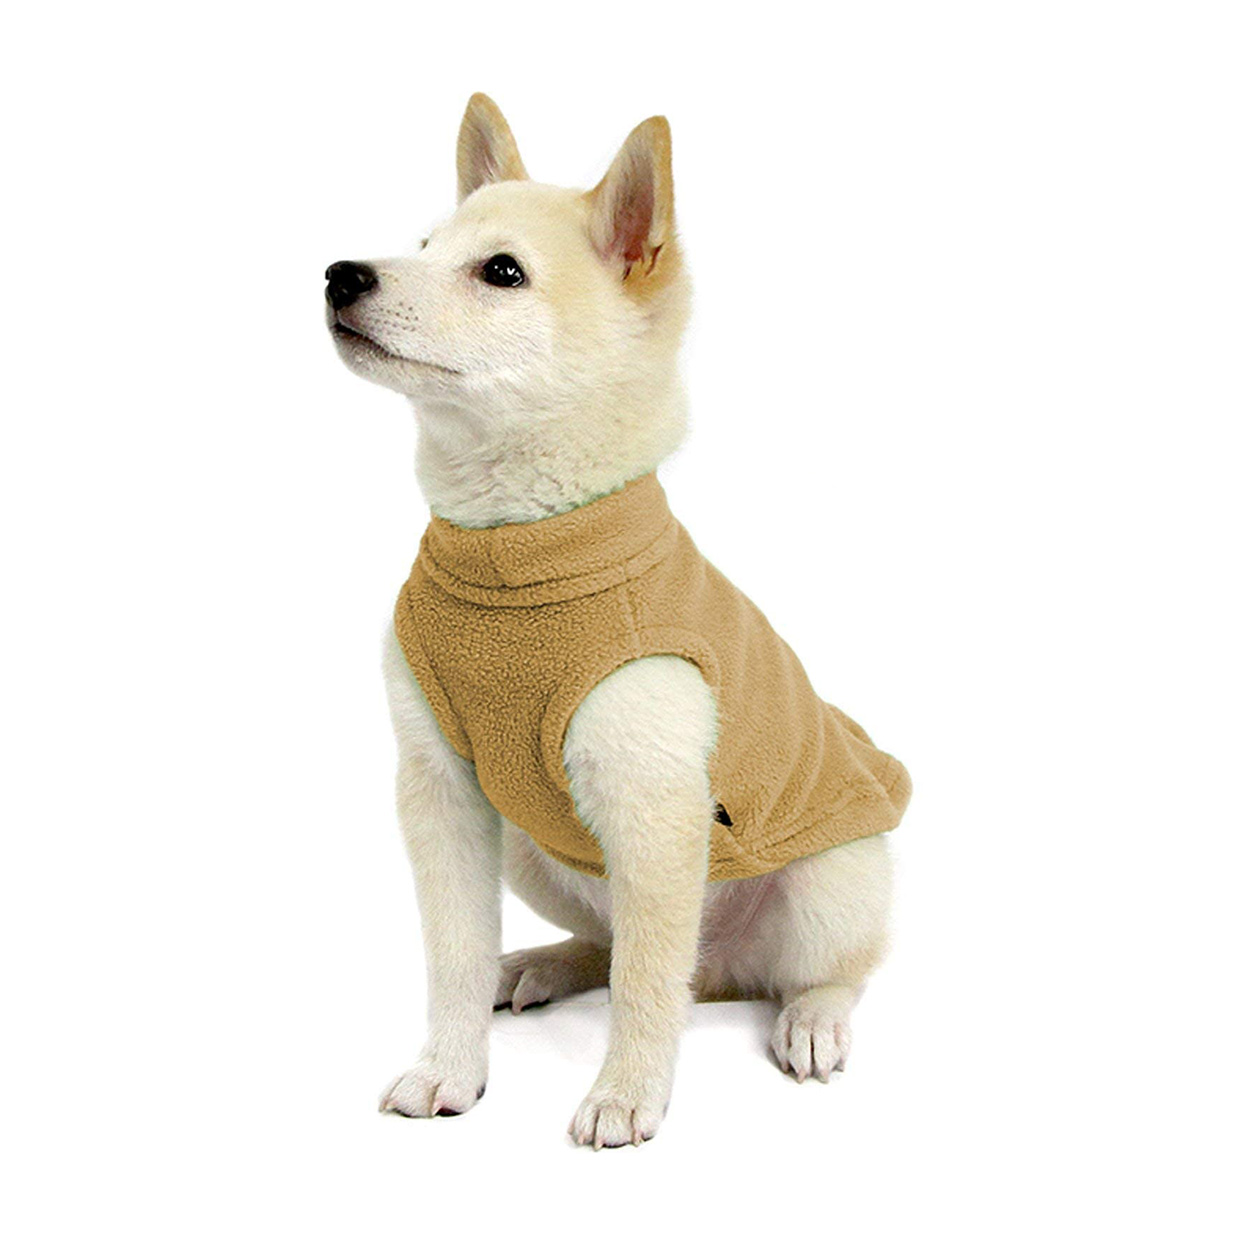 Dog wearing a Gooby Stretch Fleece Vest Sweater on a white background